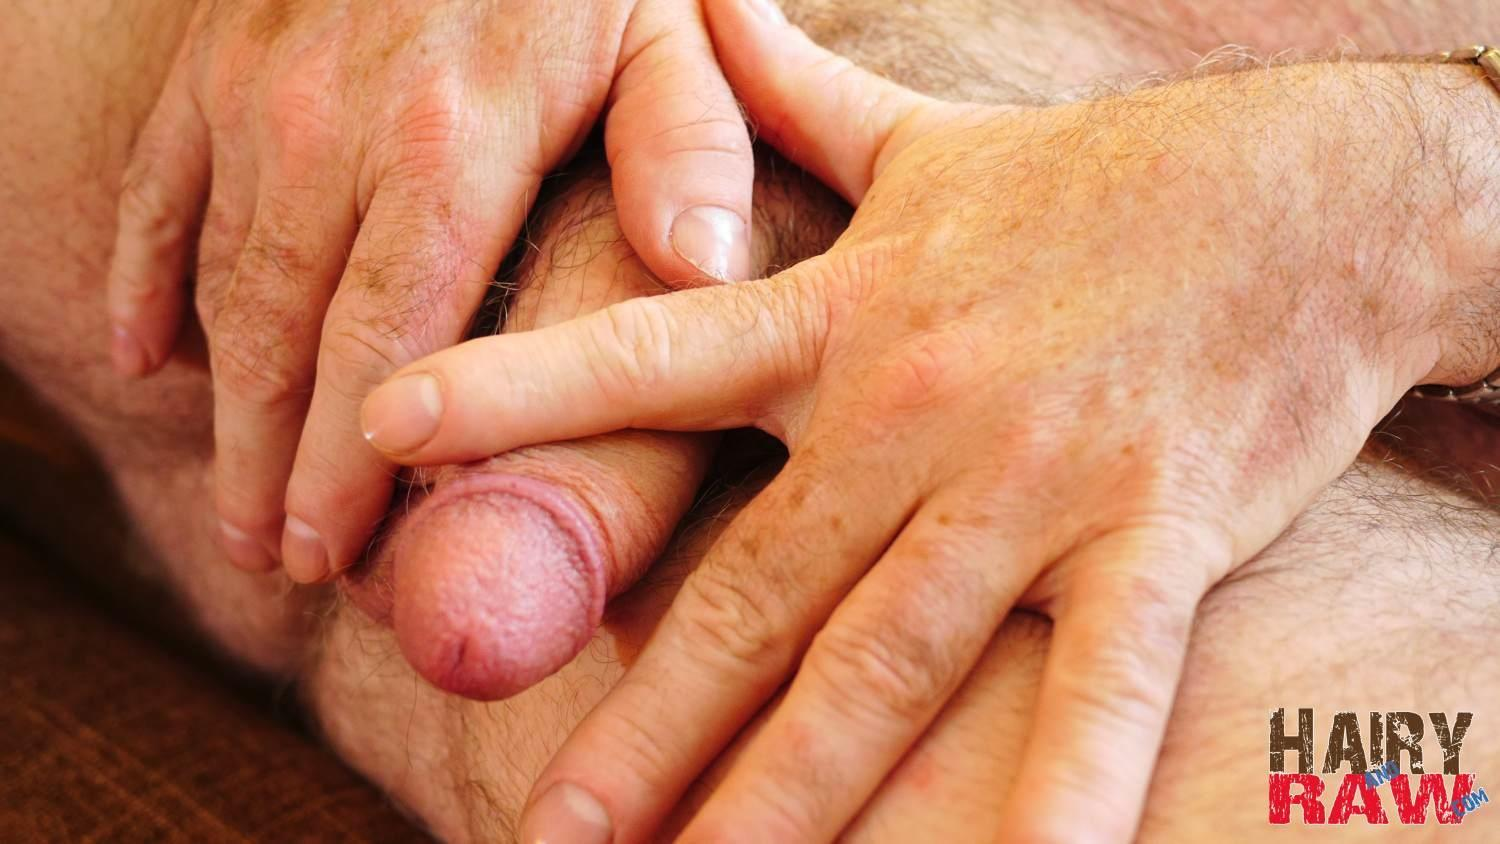 Hairy and Raw Bo Francis Suited Chubby Hairy Daddy Jerking Off Thick Cock Twink Jerking Off And Eating His Own Cum Amateur Gay Porn 11